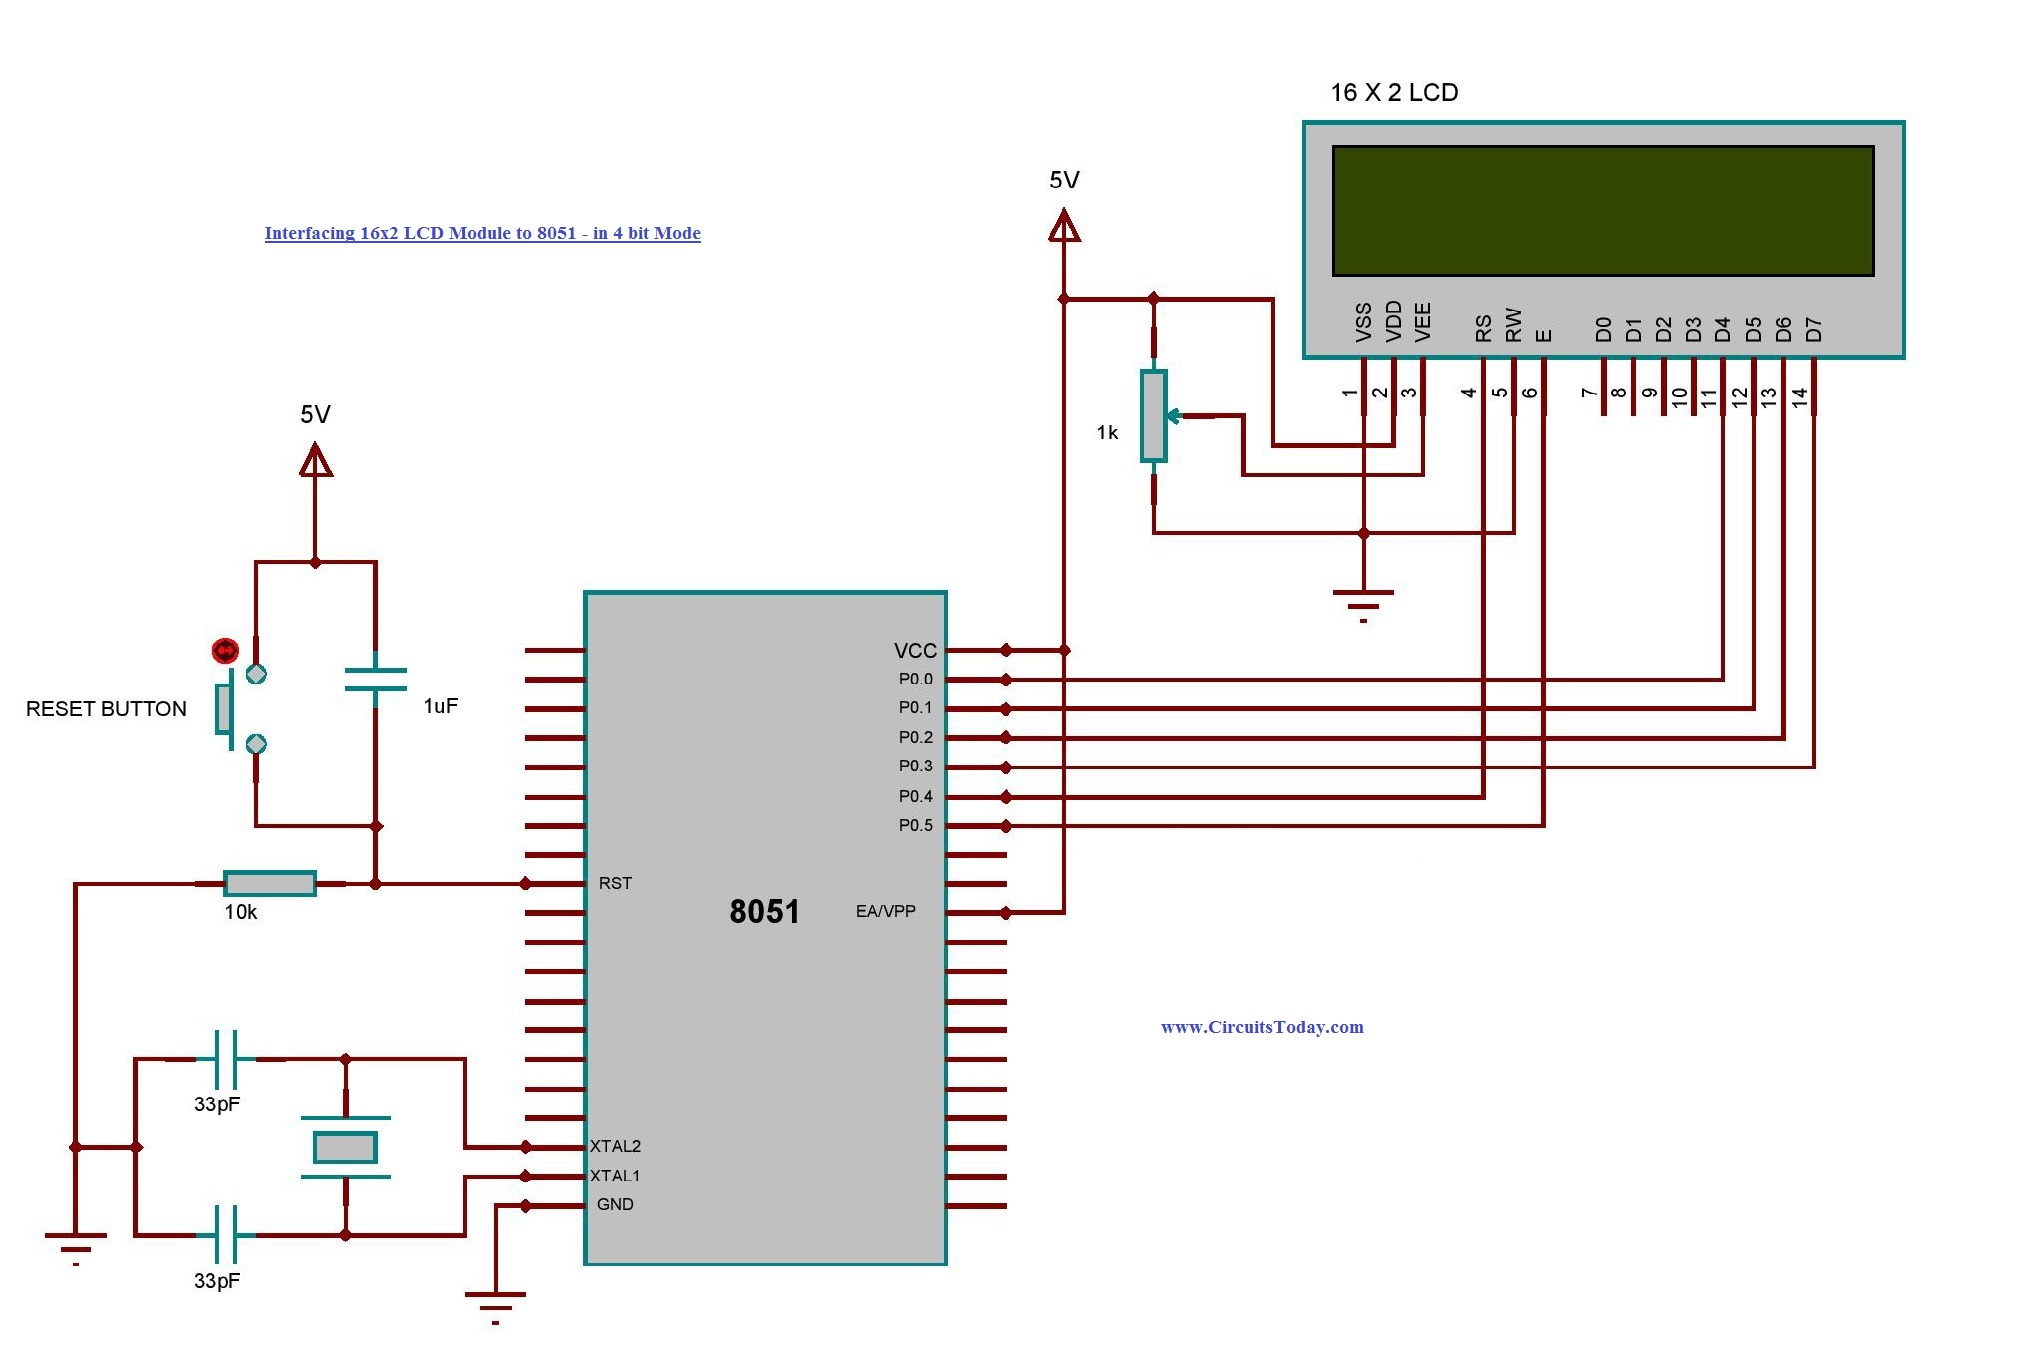 Interfacing 16x2 LCD With 8051 Microcontroller LCD Module Theory